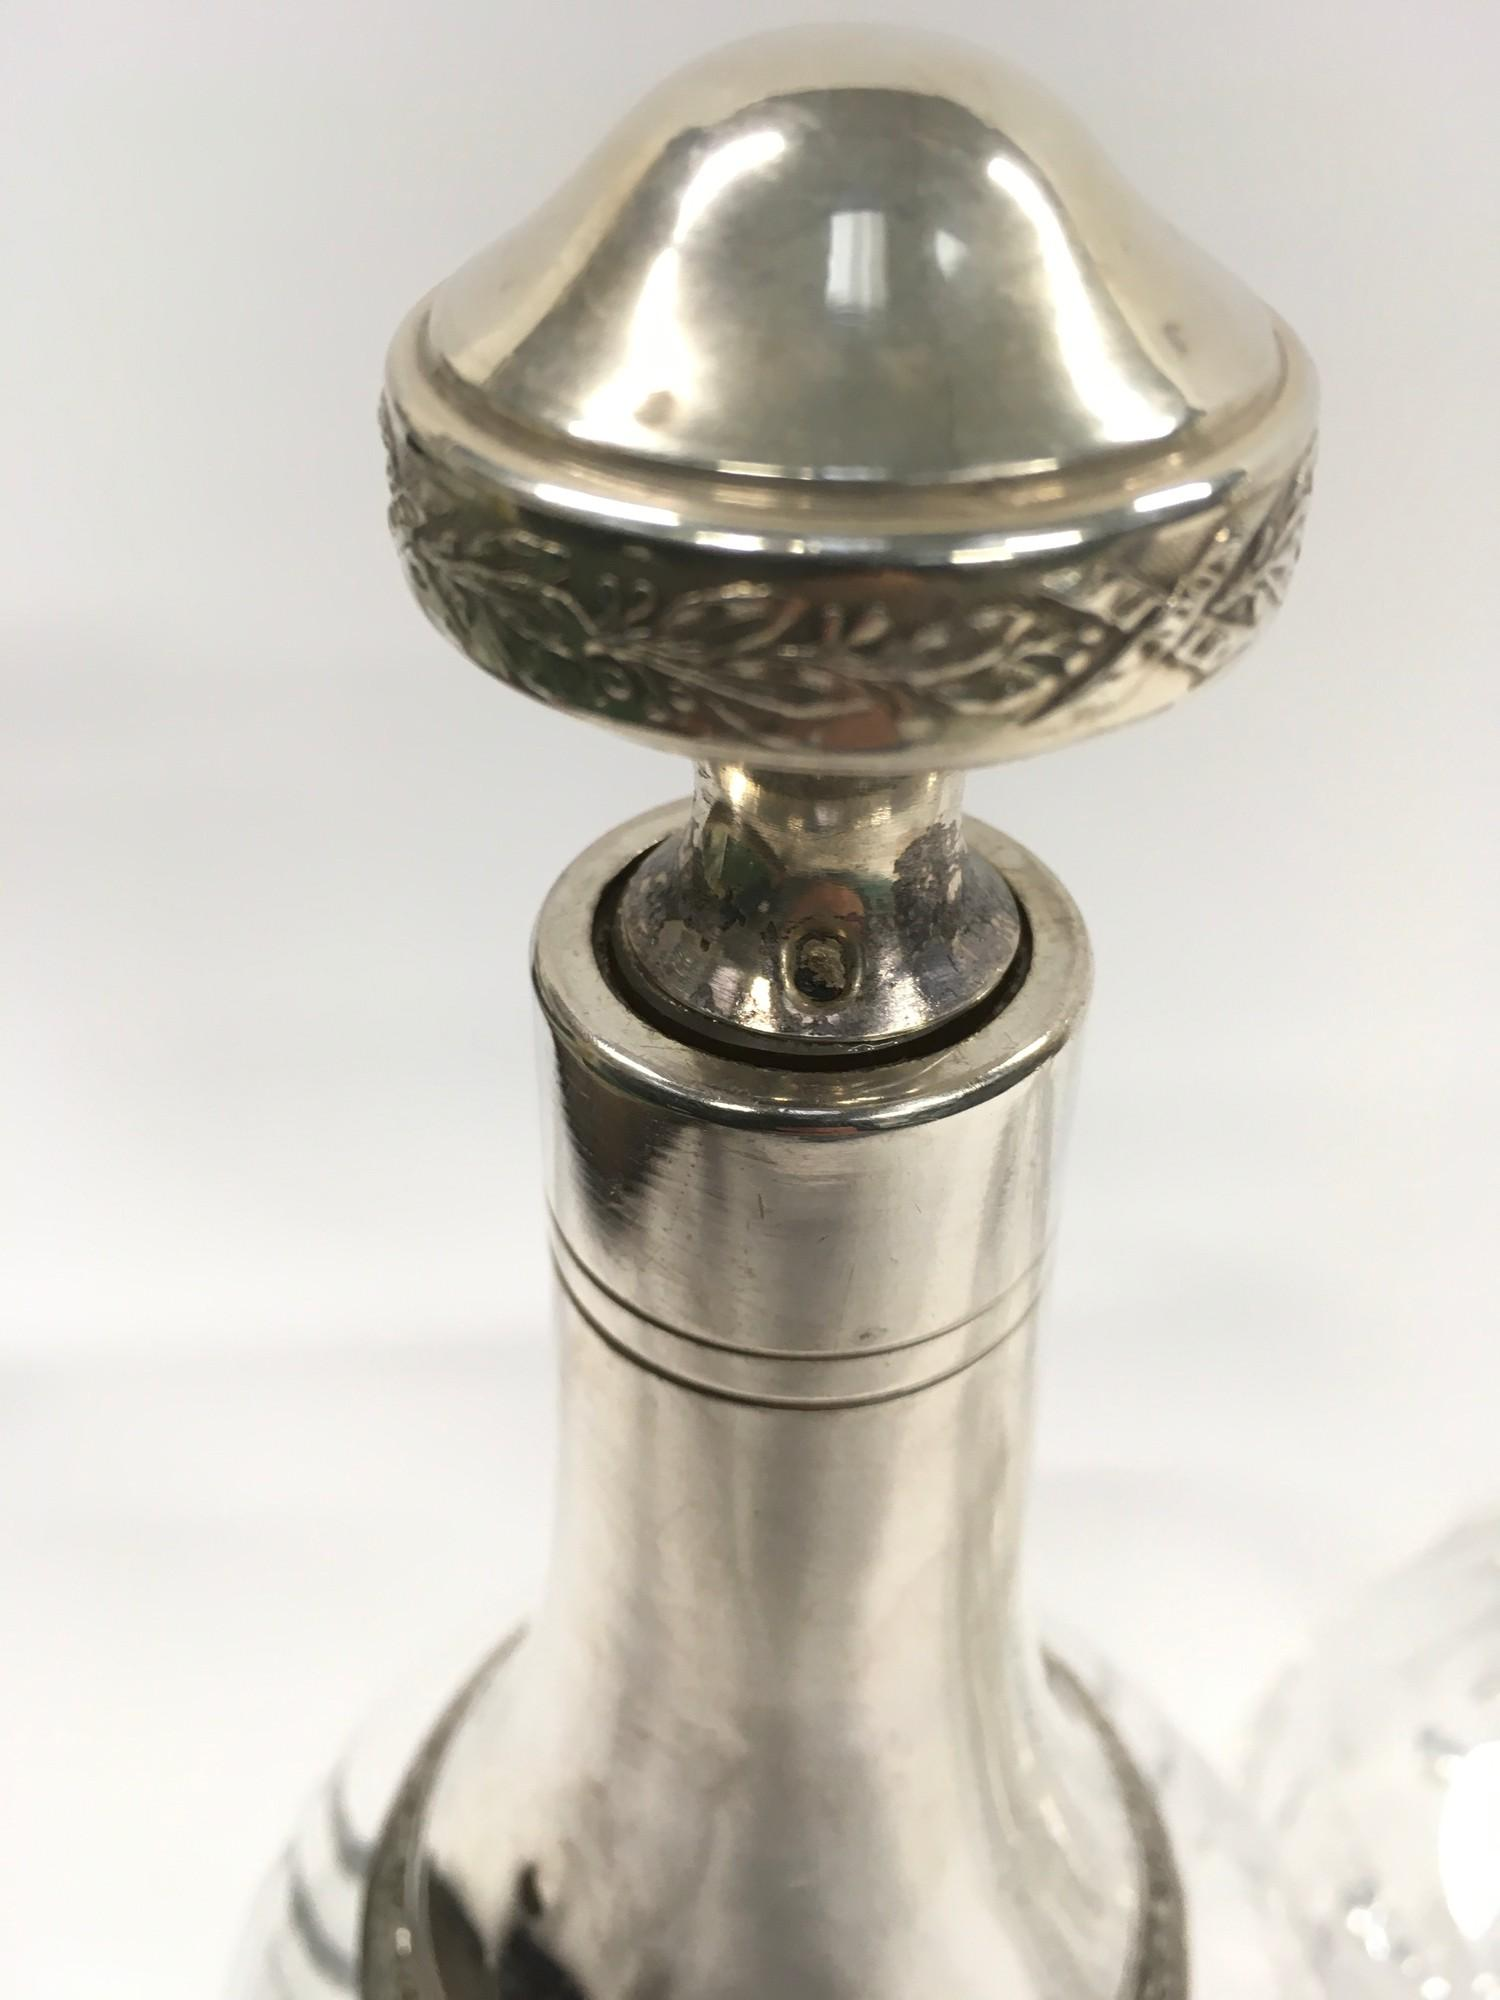 French Silver Mounted Decanter with Floral Enamel Decoration. - Image 2 of 2